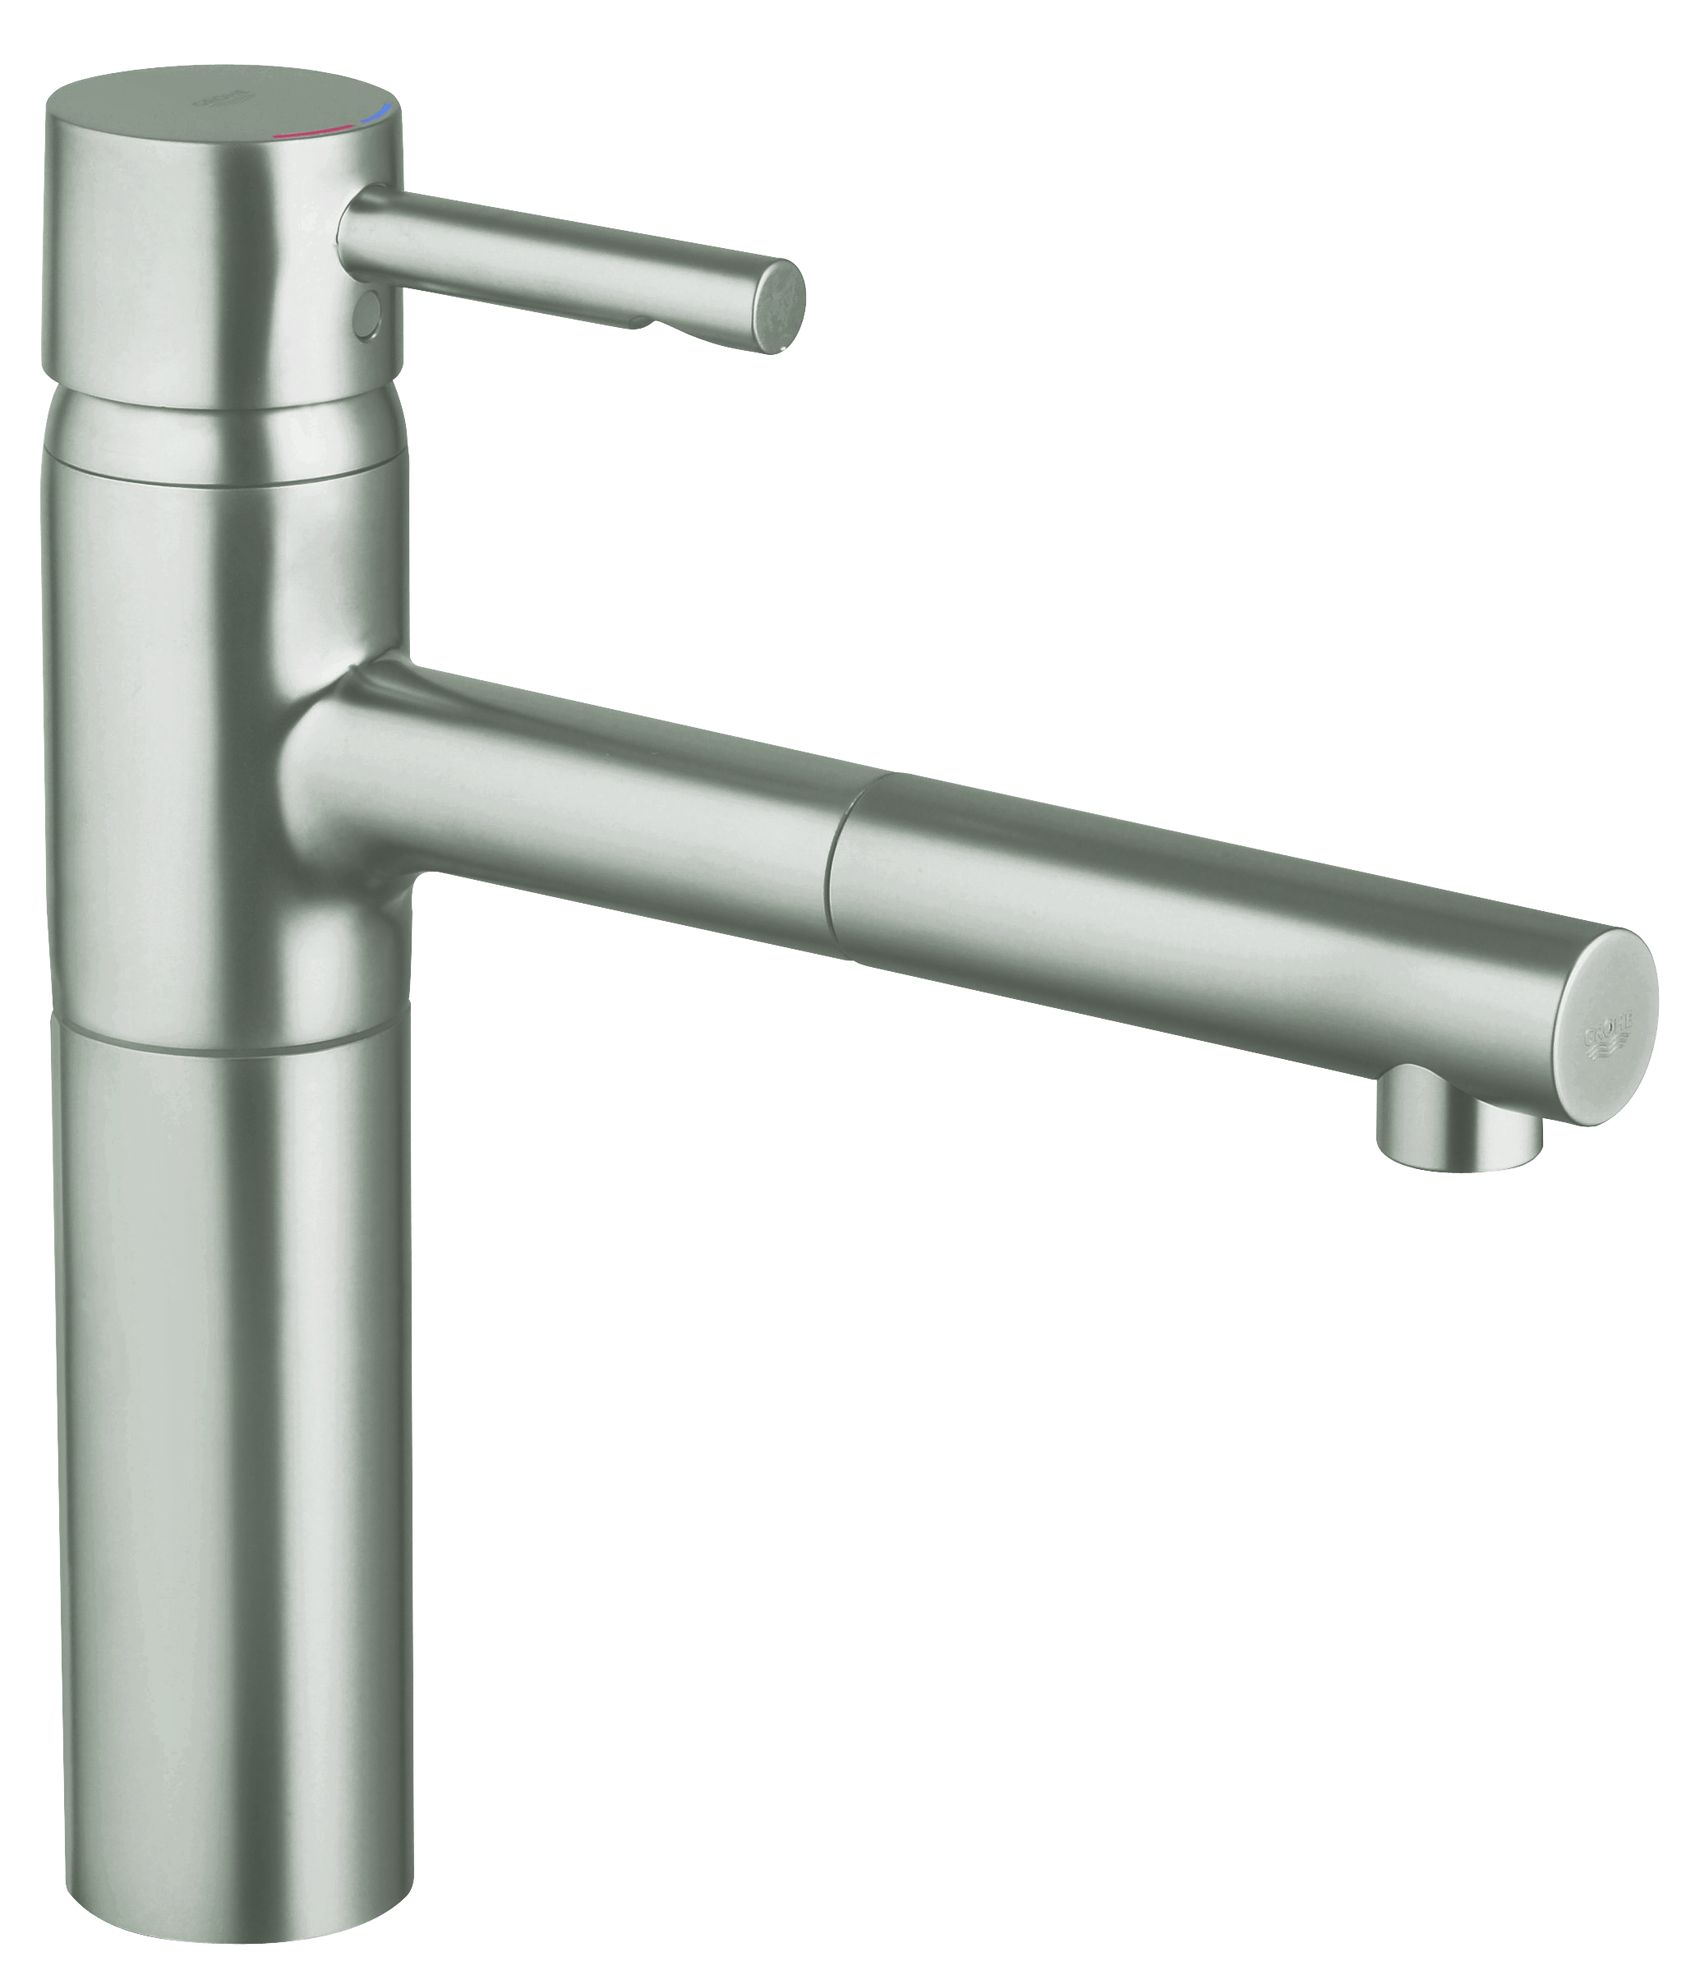 Essence Single-lever sink mixer 1/2_